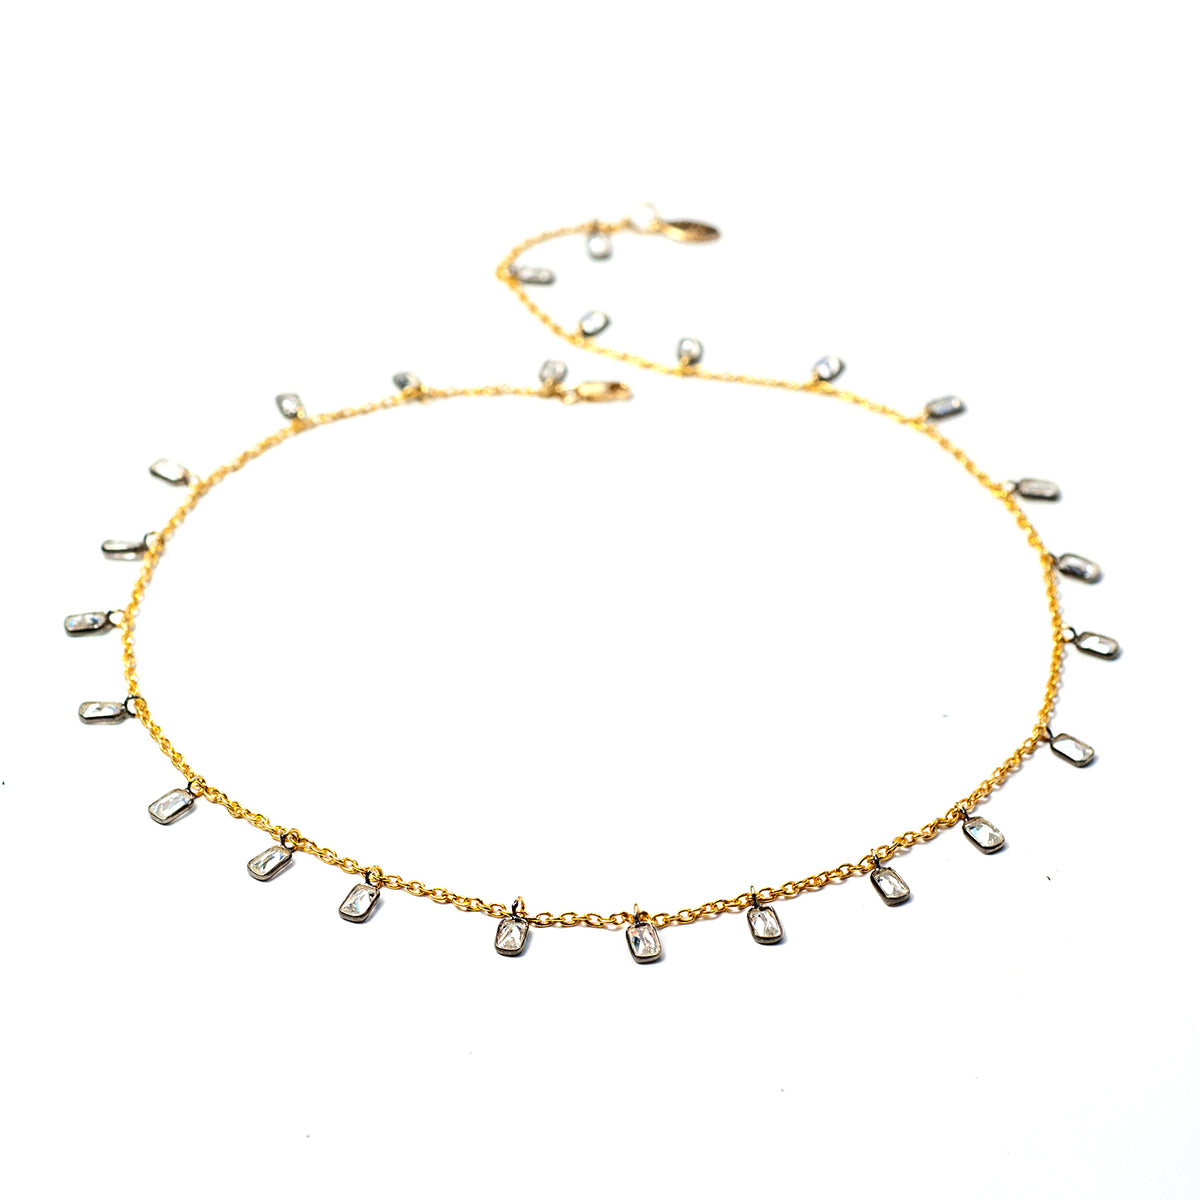 Crystal Confetti Necklace N1701 - Sweet Romance Wholesale